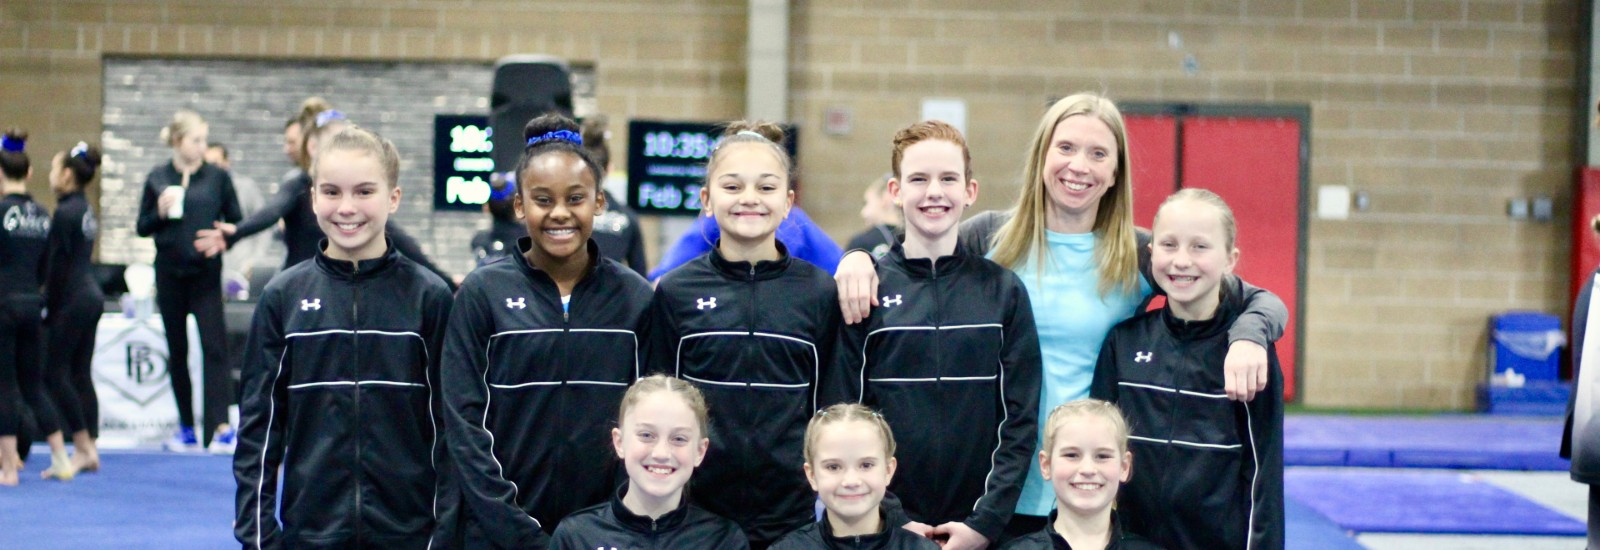 Women's J.O. Gymnastics Team